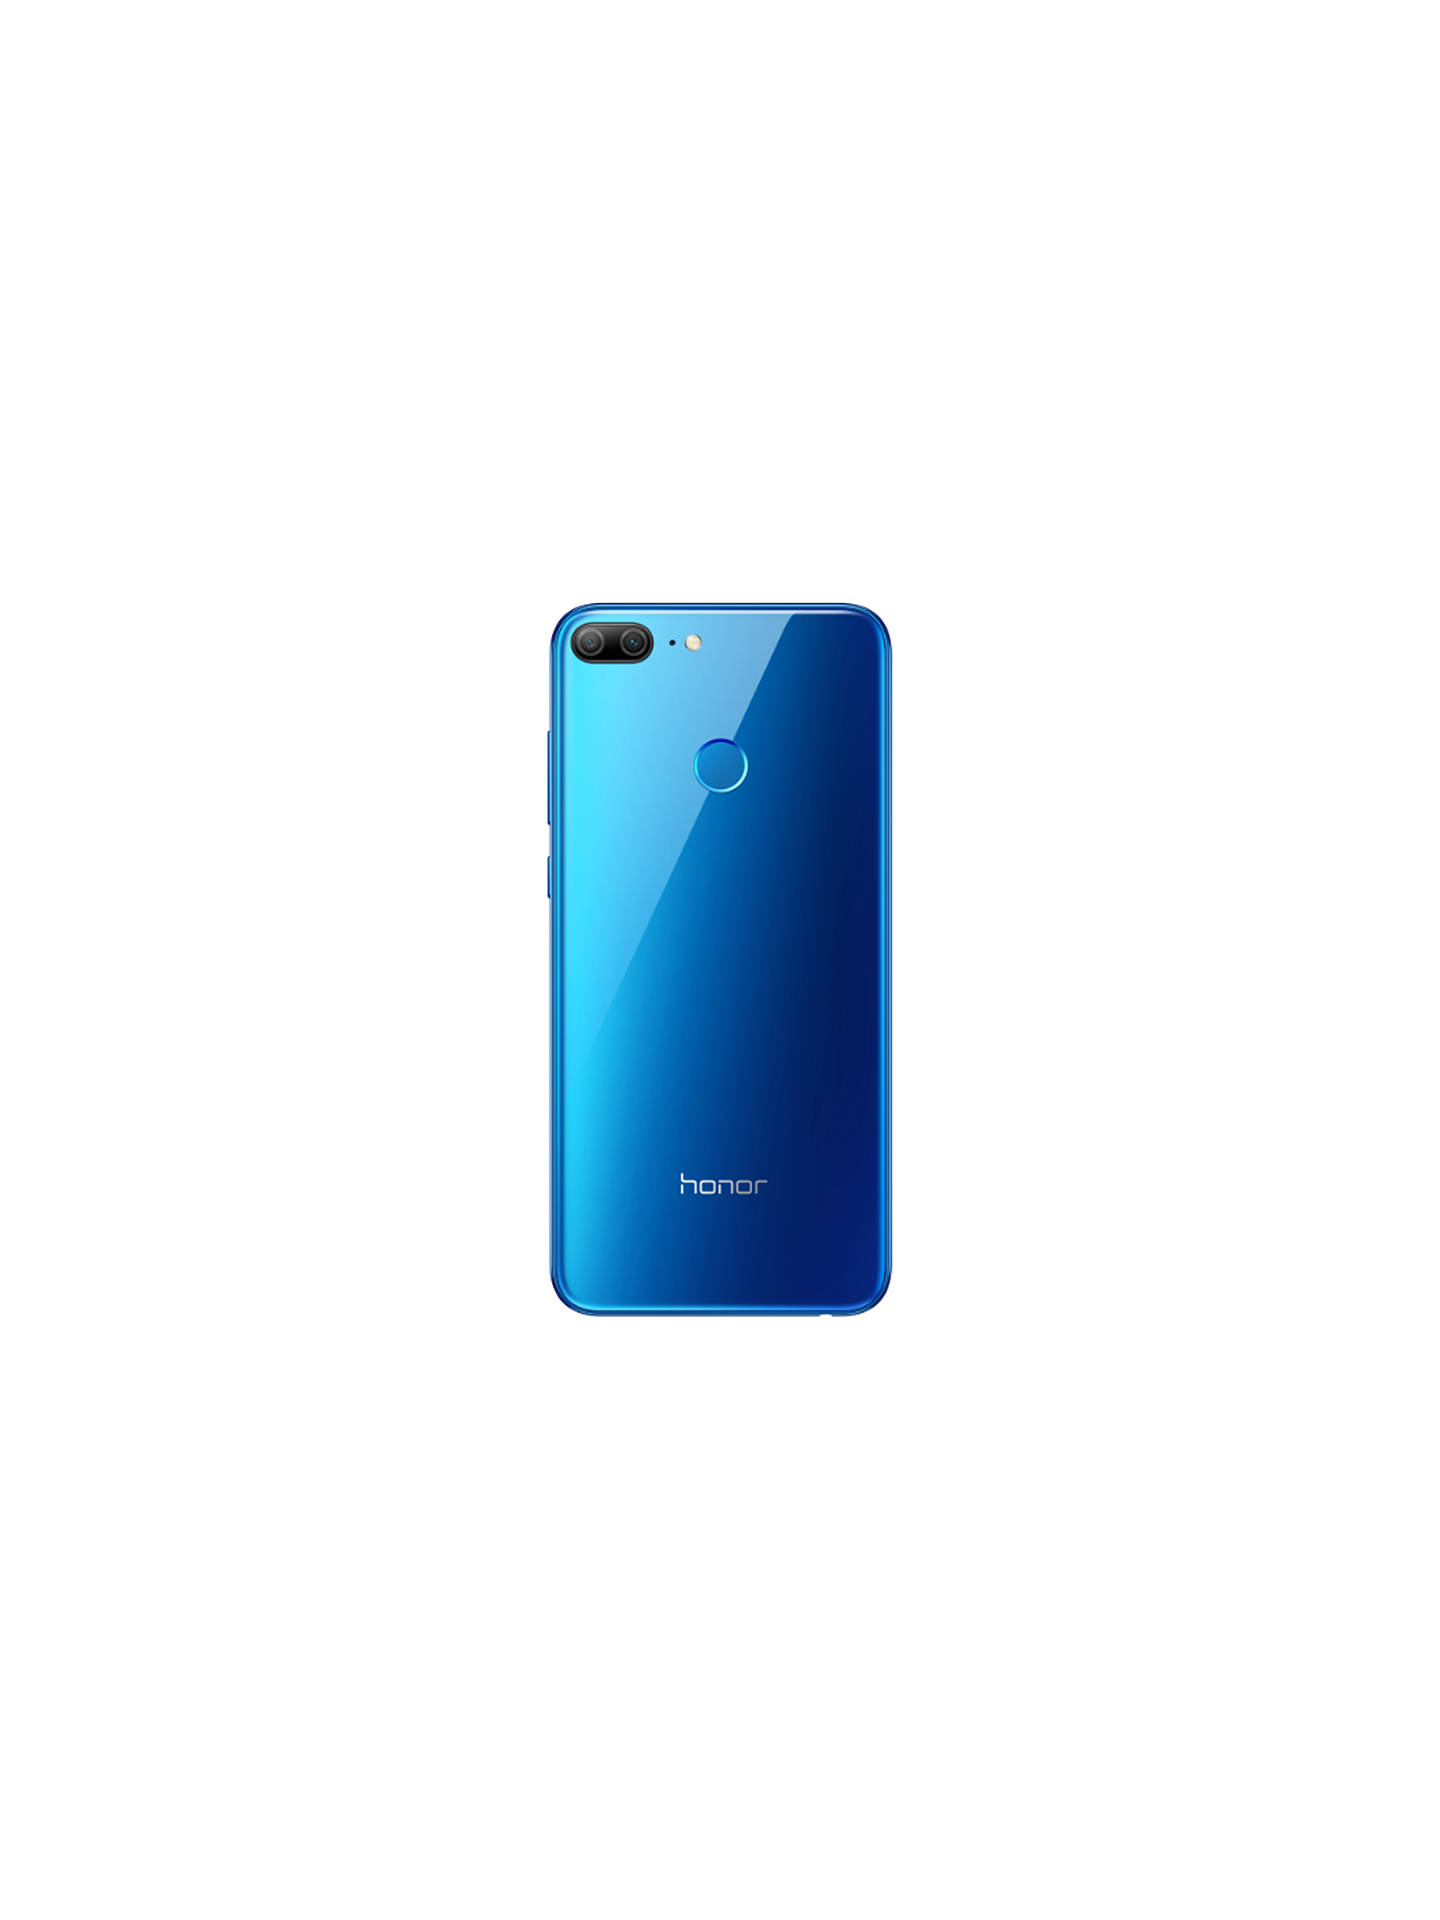 BuyHonor 9 Lite Dual SIM Smartphone Android 565 4G LTE